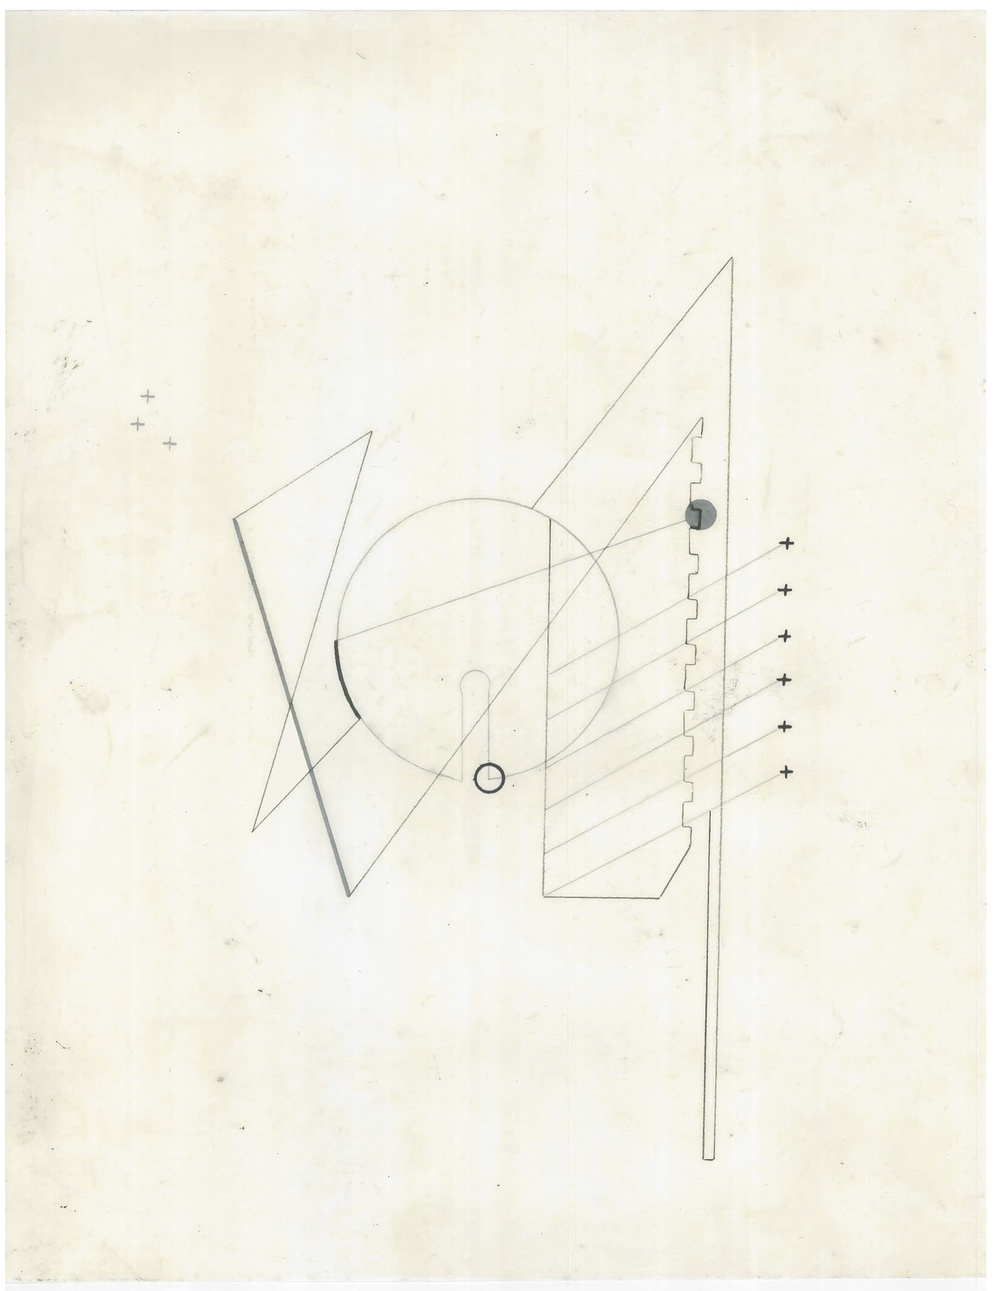 Untitled (the city, observations 21A)  Pencil on oiled fabriano paper  279mm x 216mm  December 2013